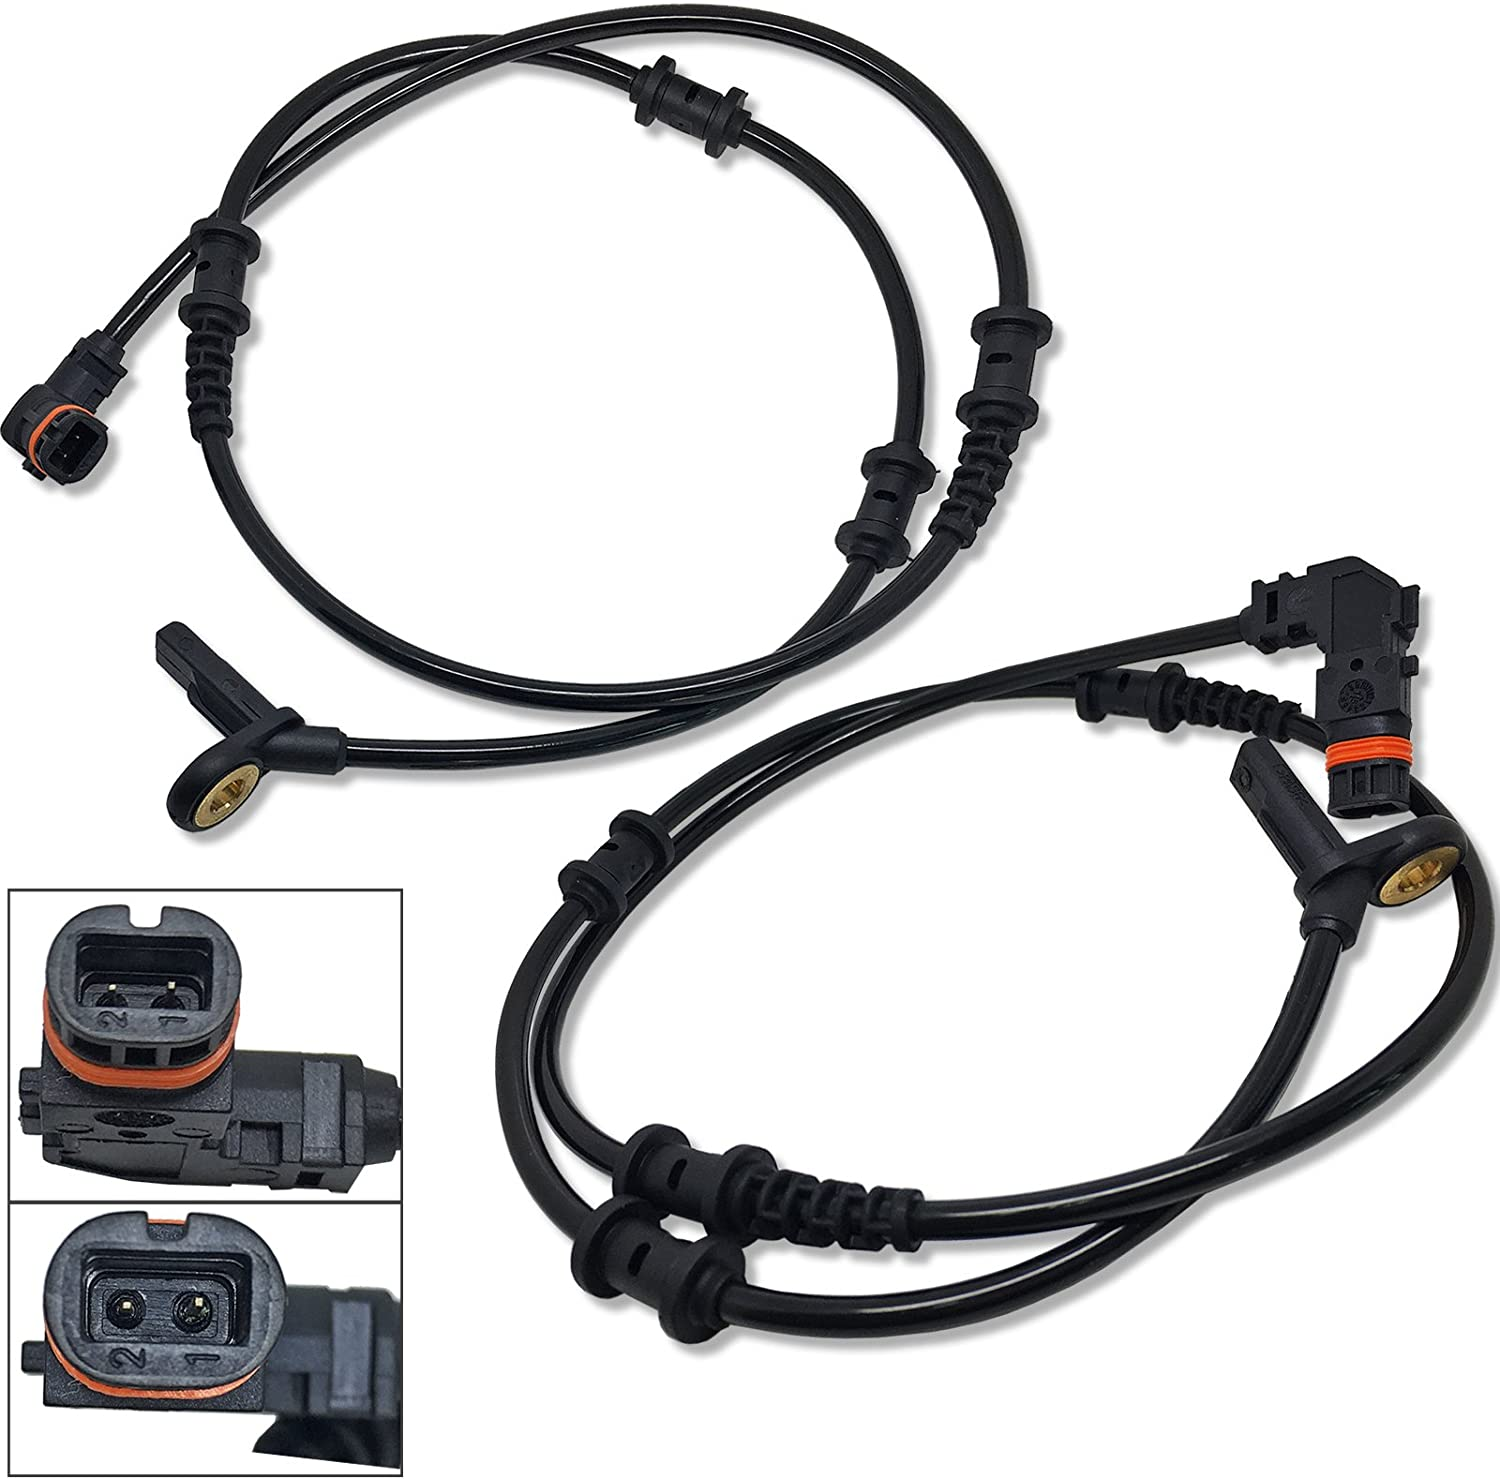 RAYC 4Pcs Front Rear ABS Wheel Speed Sensor 1645400717 1645400917 for ML320 ML350 ML450 ML500 ML550 ML63 AMG R320 R350 R500 R63 AMG W164 GL320 GL350 GL450 GL550